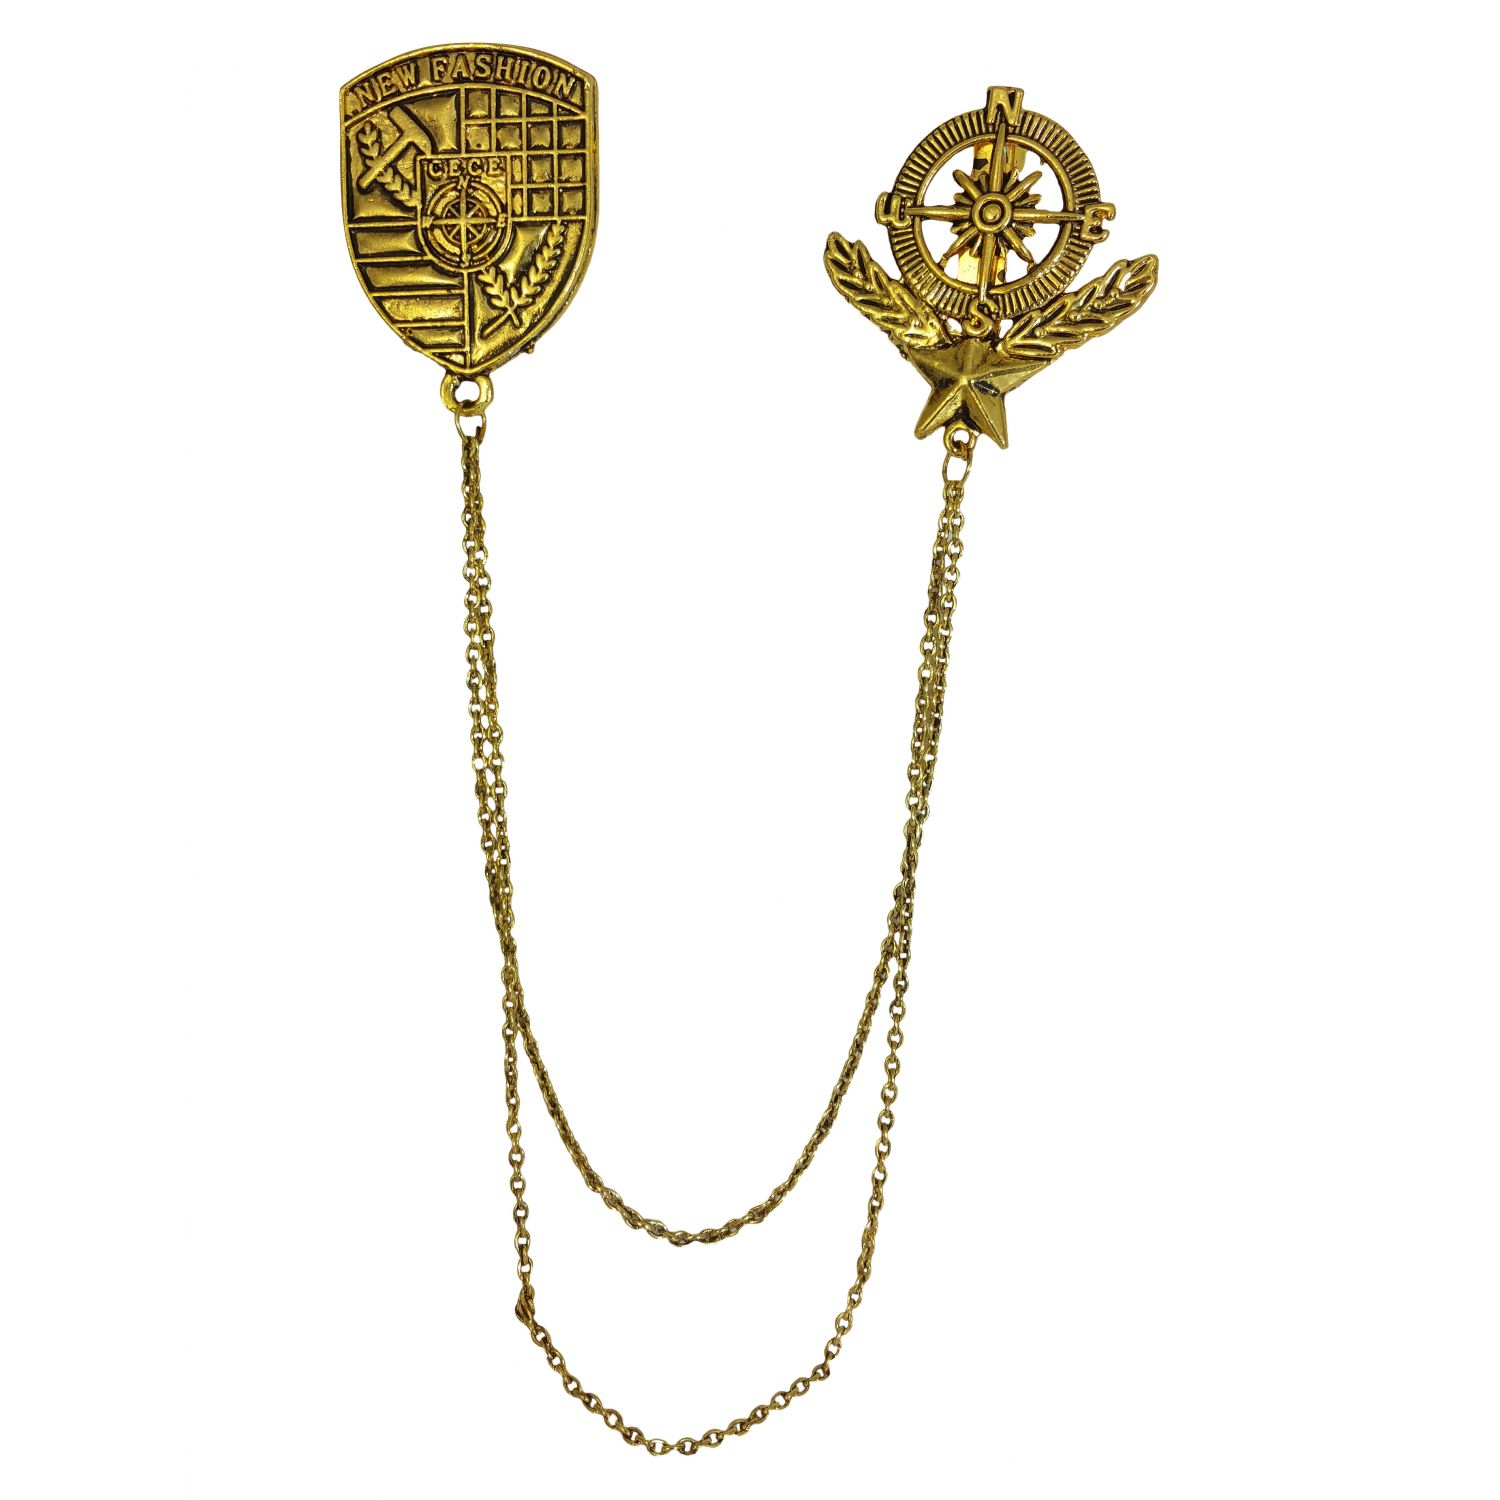 Exclusive Veteran Badge Tassled Chains Gold Foamed Brooch